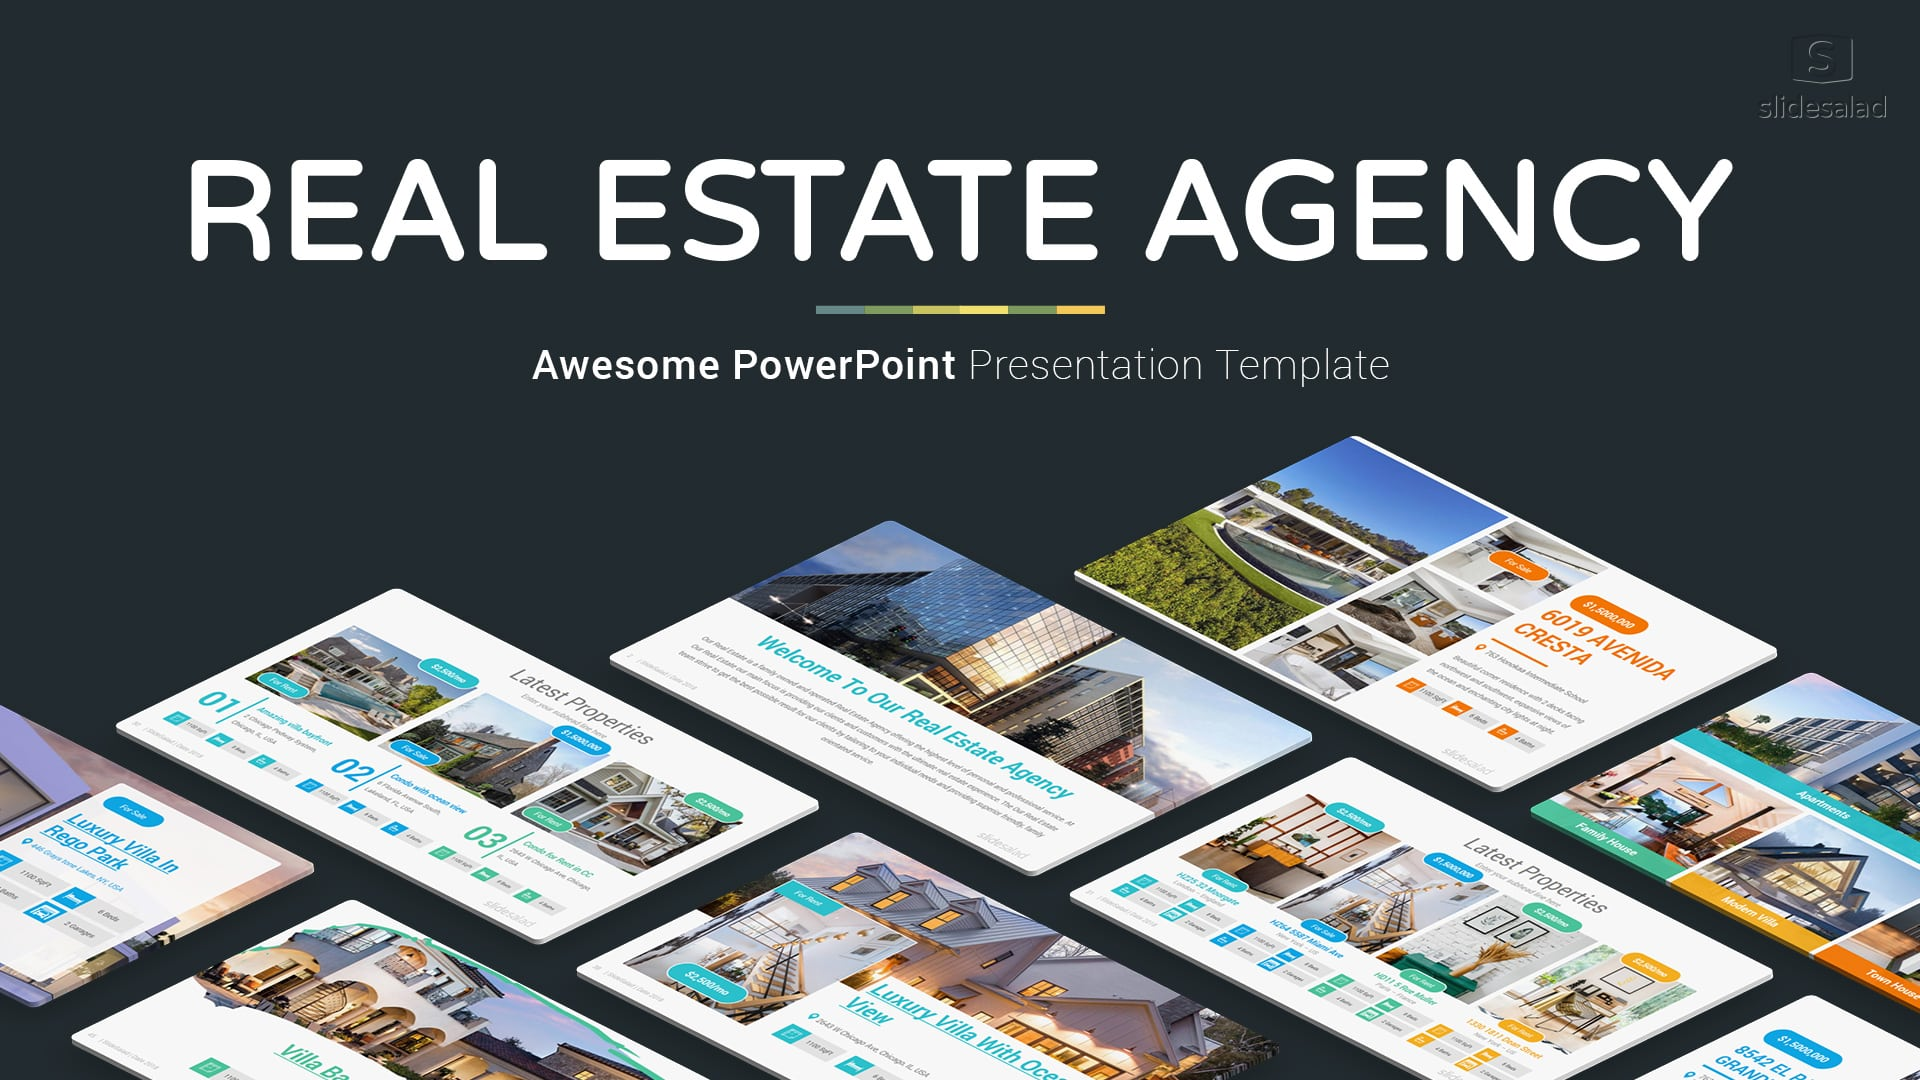 Real Estate Agency PowerPoint Template Designs – Real Estate PowerPoint Presentation Slides